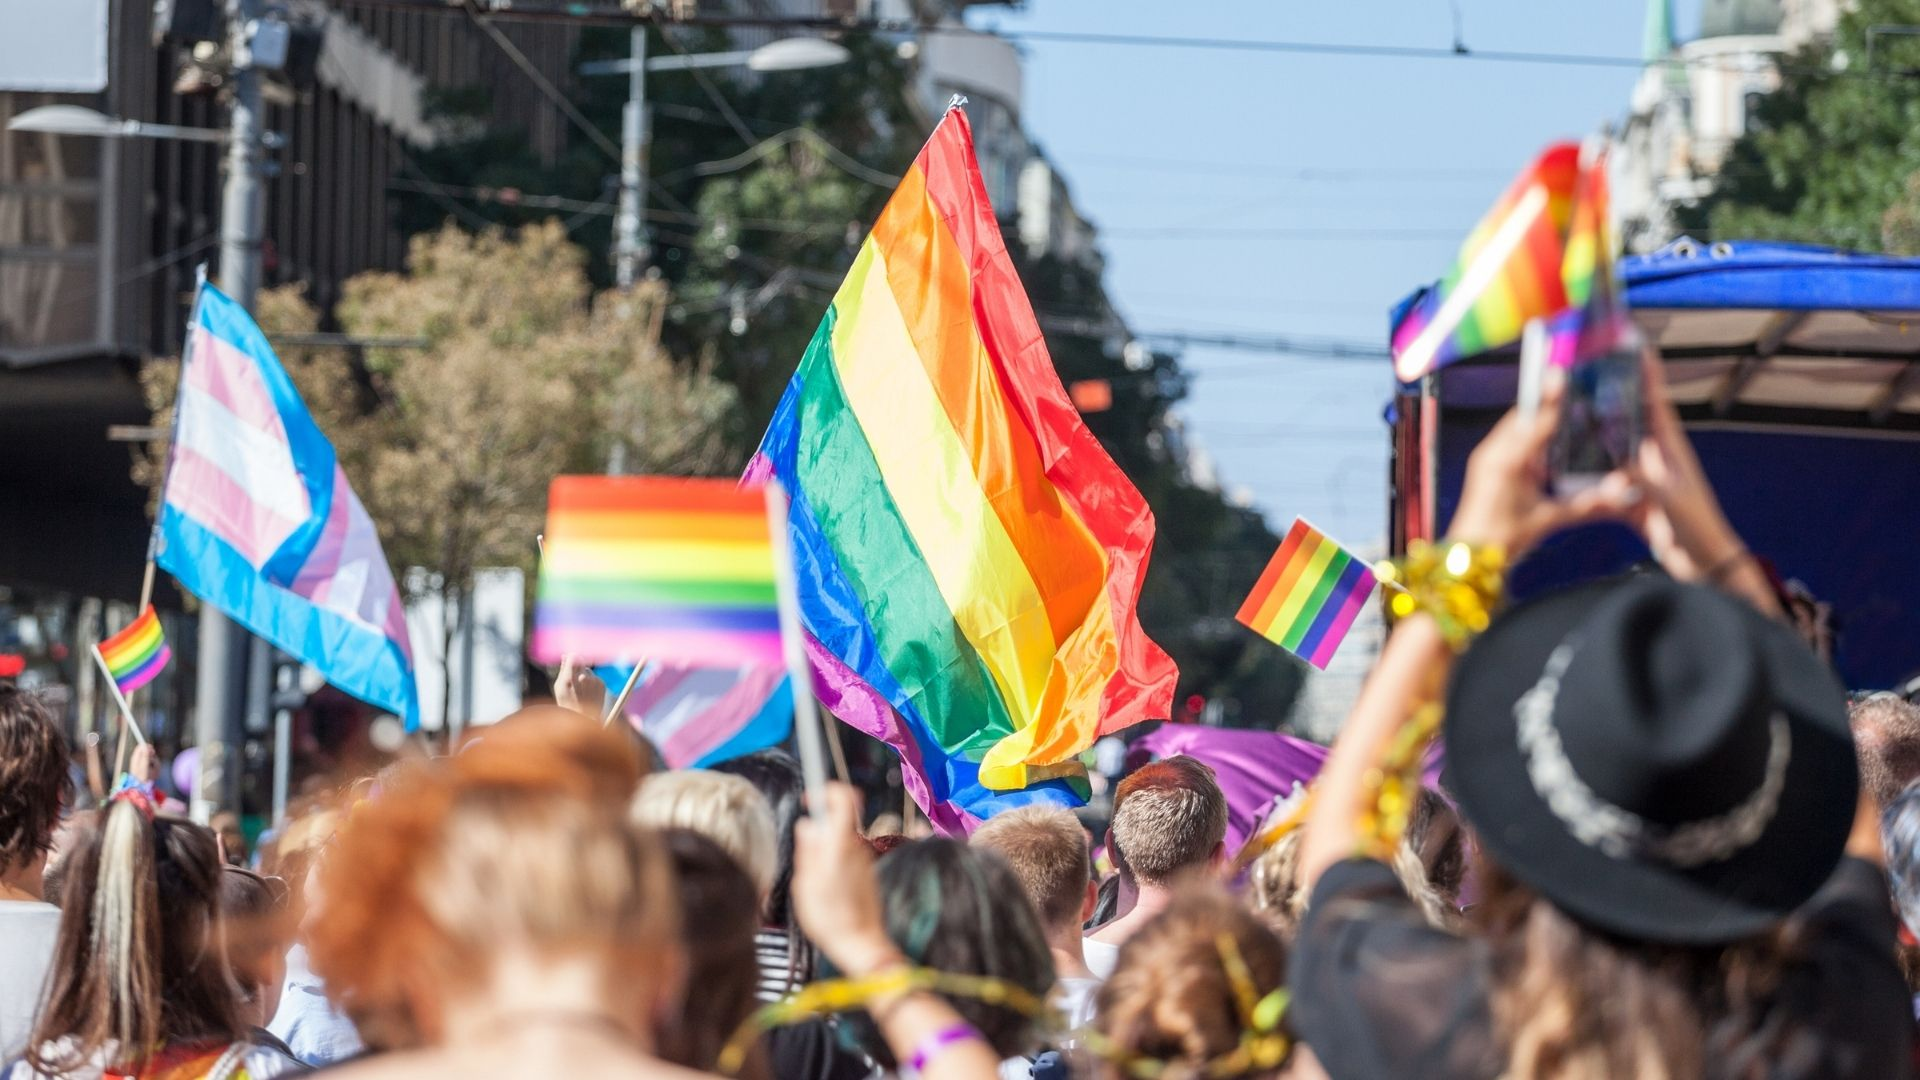 The Best Gay Events and Bars in Austin